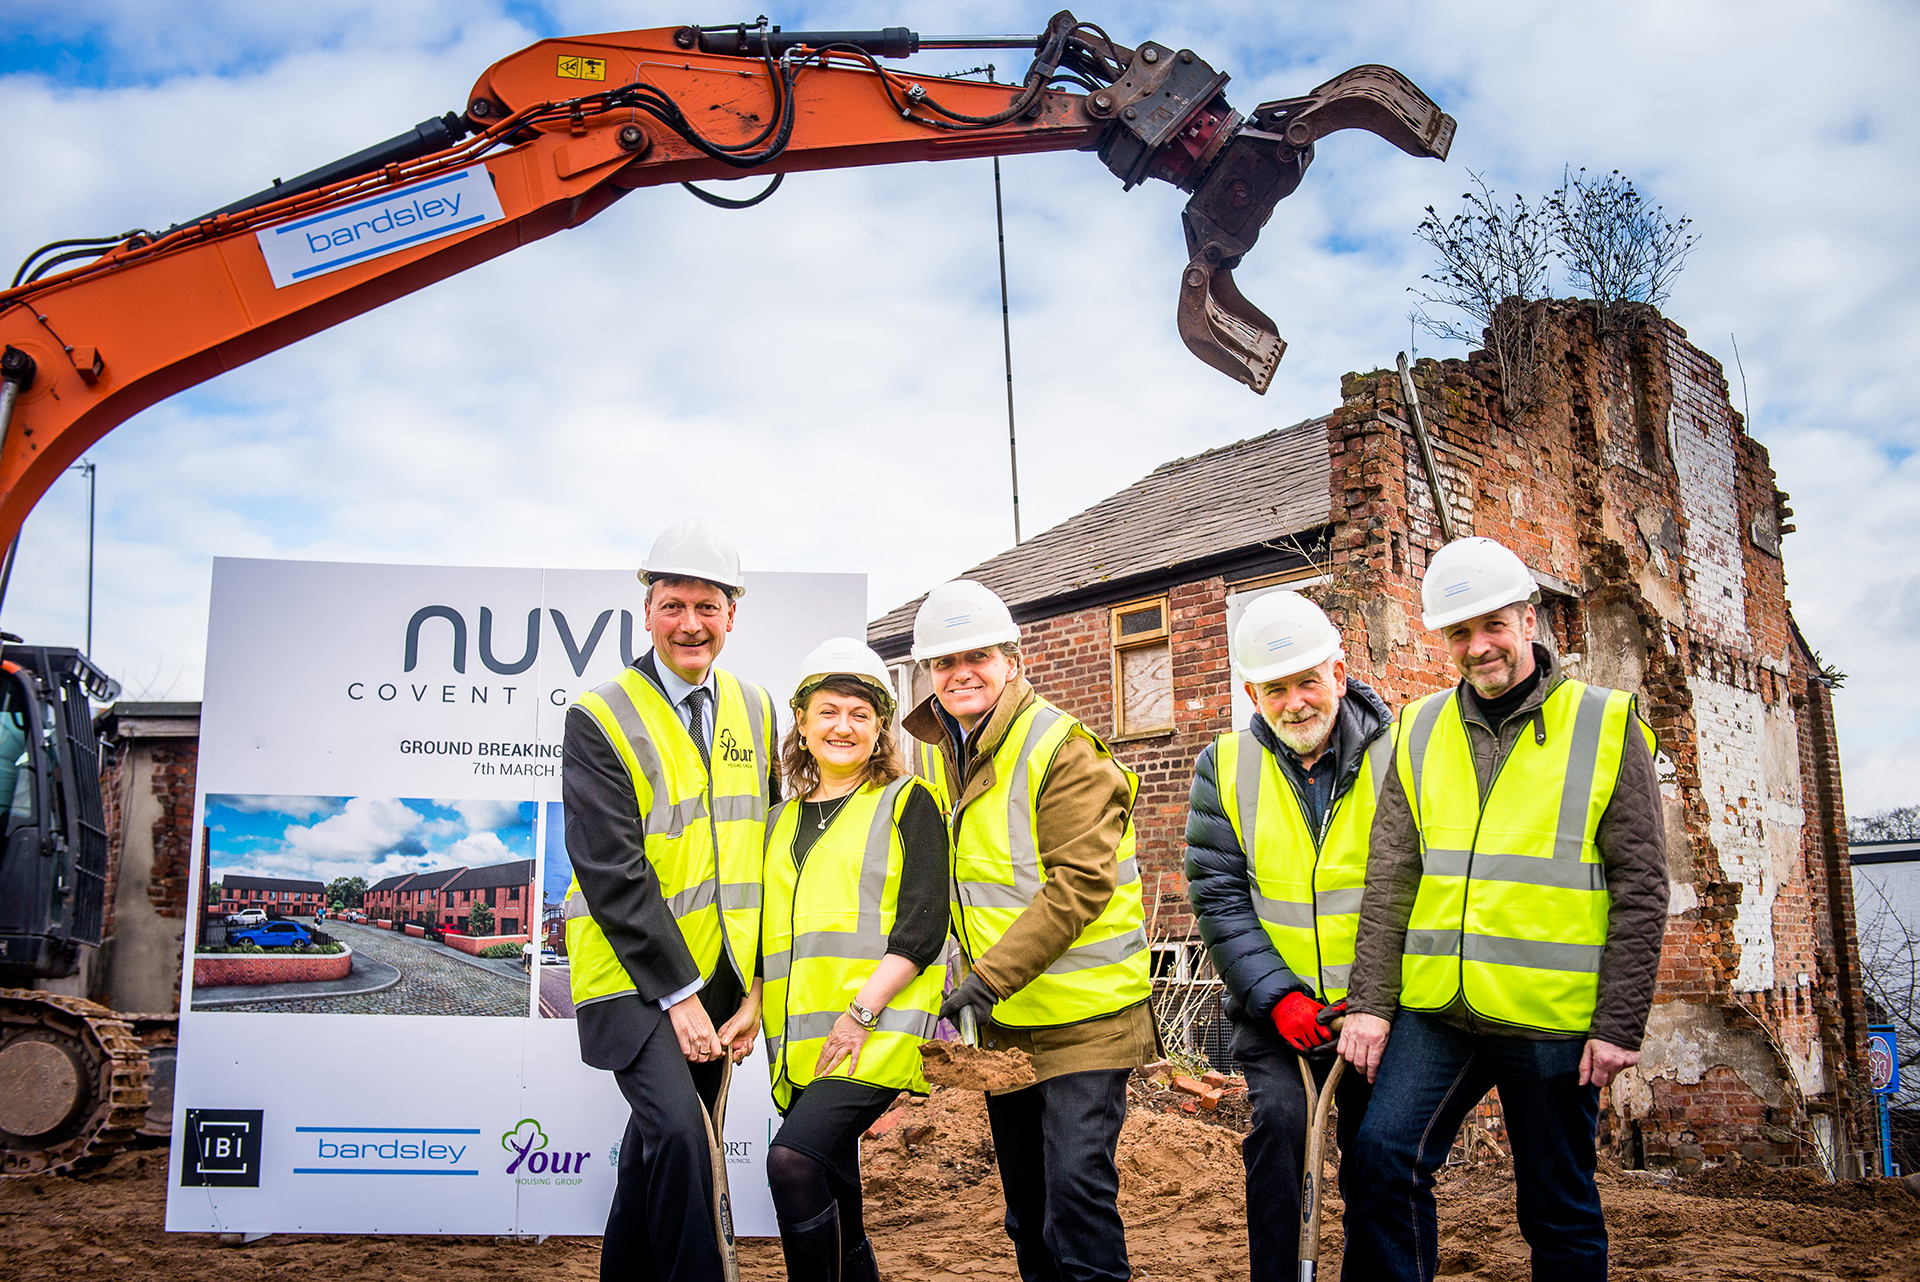 New homes set to continue Stockport's transformation